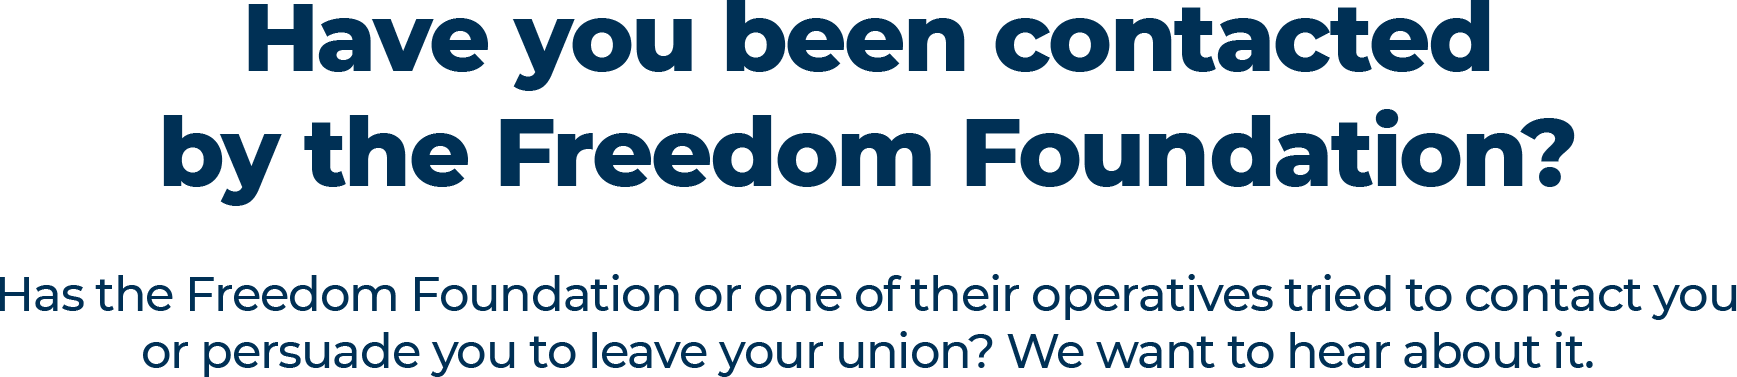 Have you been contacted by the Freedom Foundation? Has the Freedom Foundation or one of their operatives tried to contact you or persuade you to leave your union? We want to hear about it.